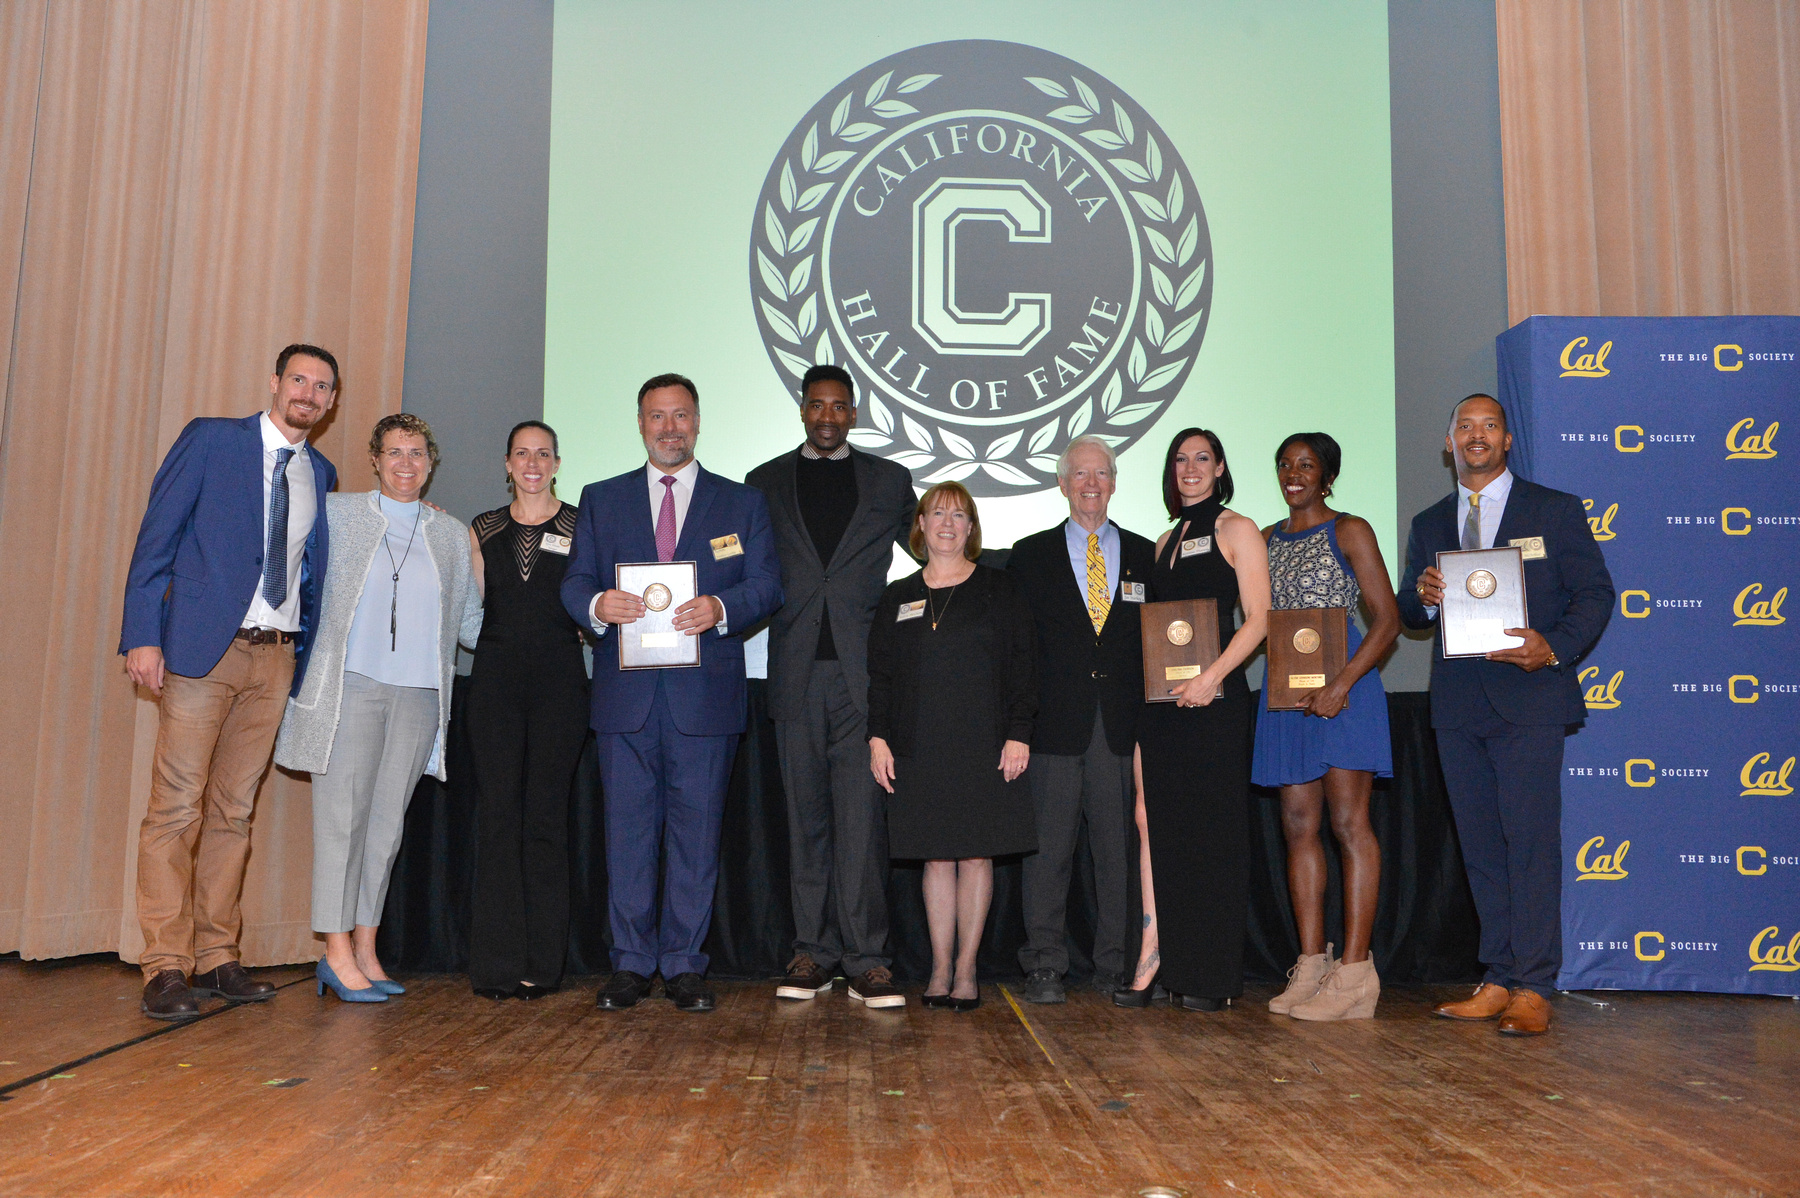 2018 Cal Hall of Fame ceremony _20181026_213809_MarcusE-(ZF-0861-35620-1-208).jpg